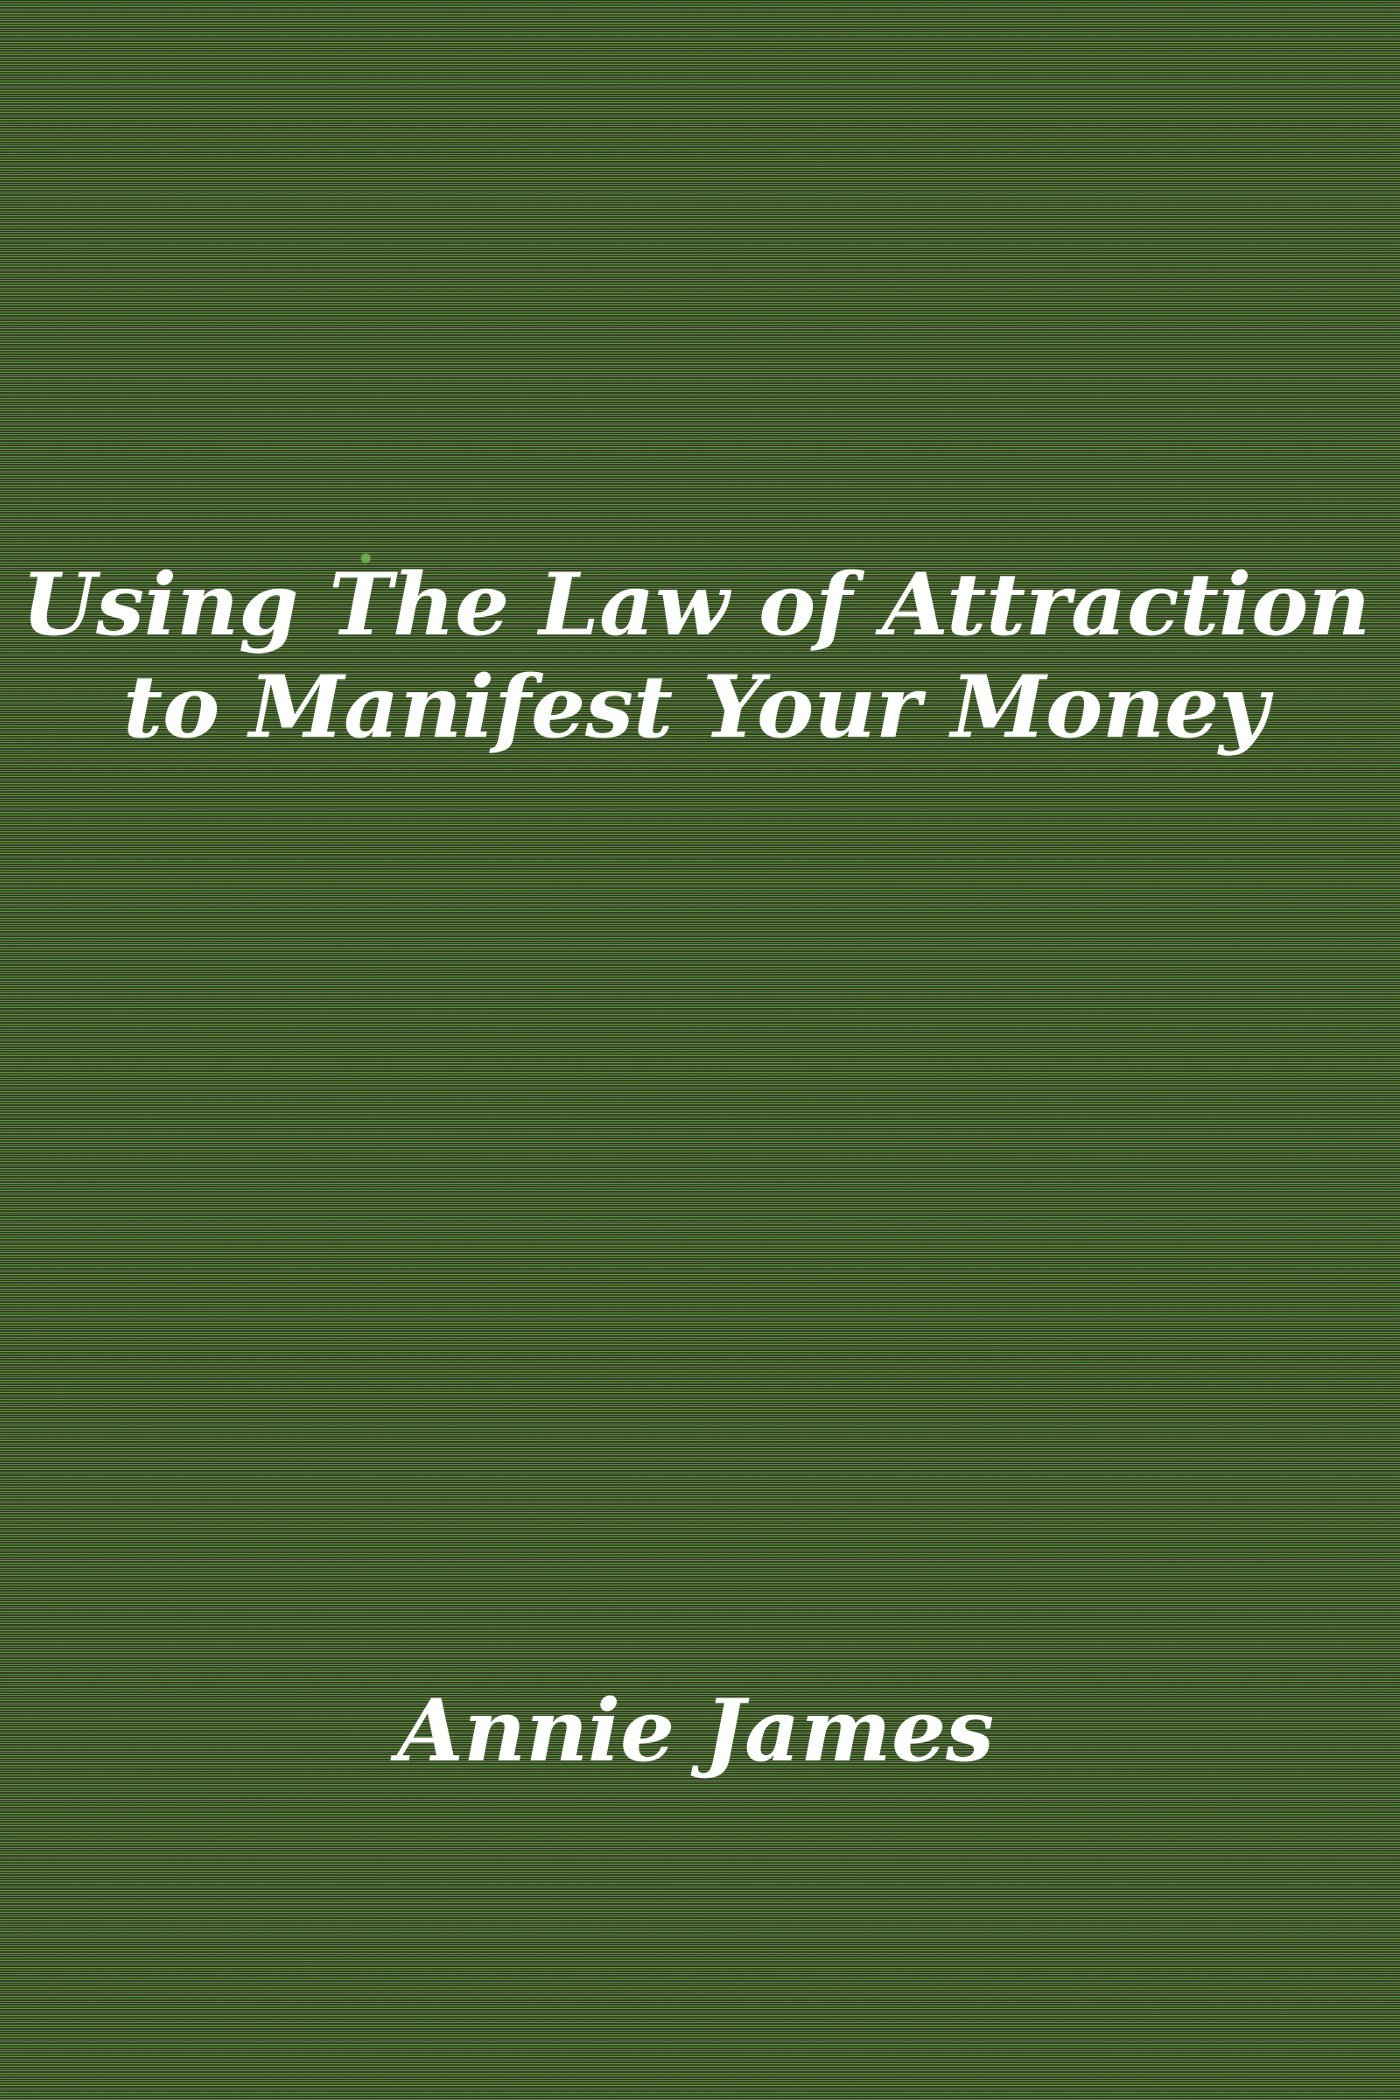 Using The Law of Attraction To Manifest Your Money